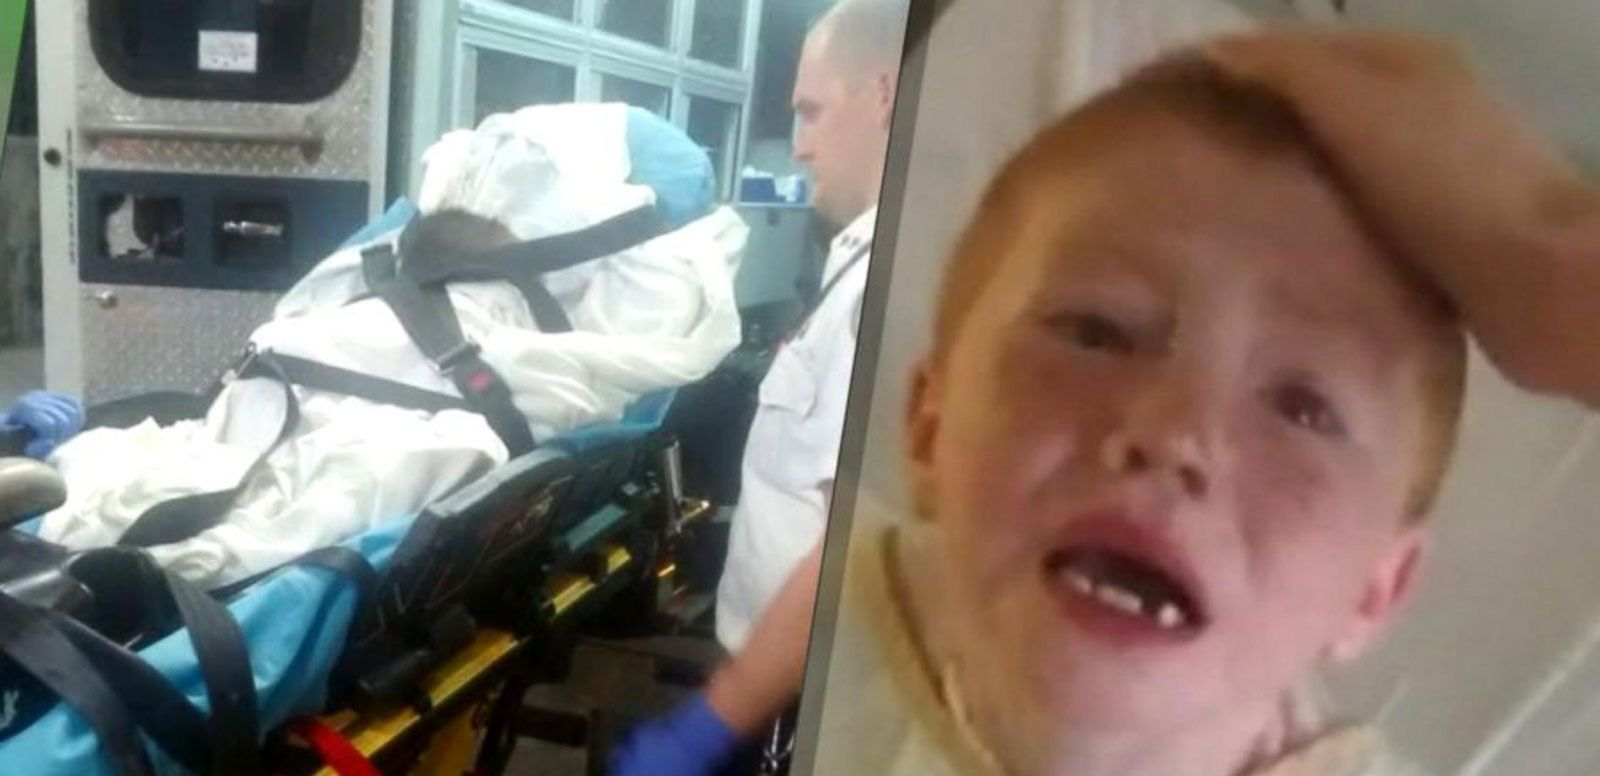 VIDEO: Two Boys Severely Sunburned at Daycare Outing